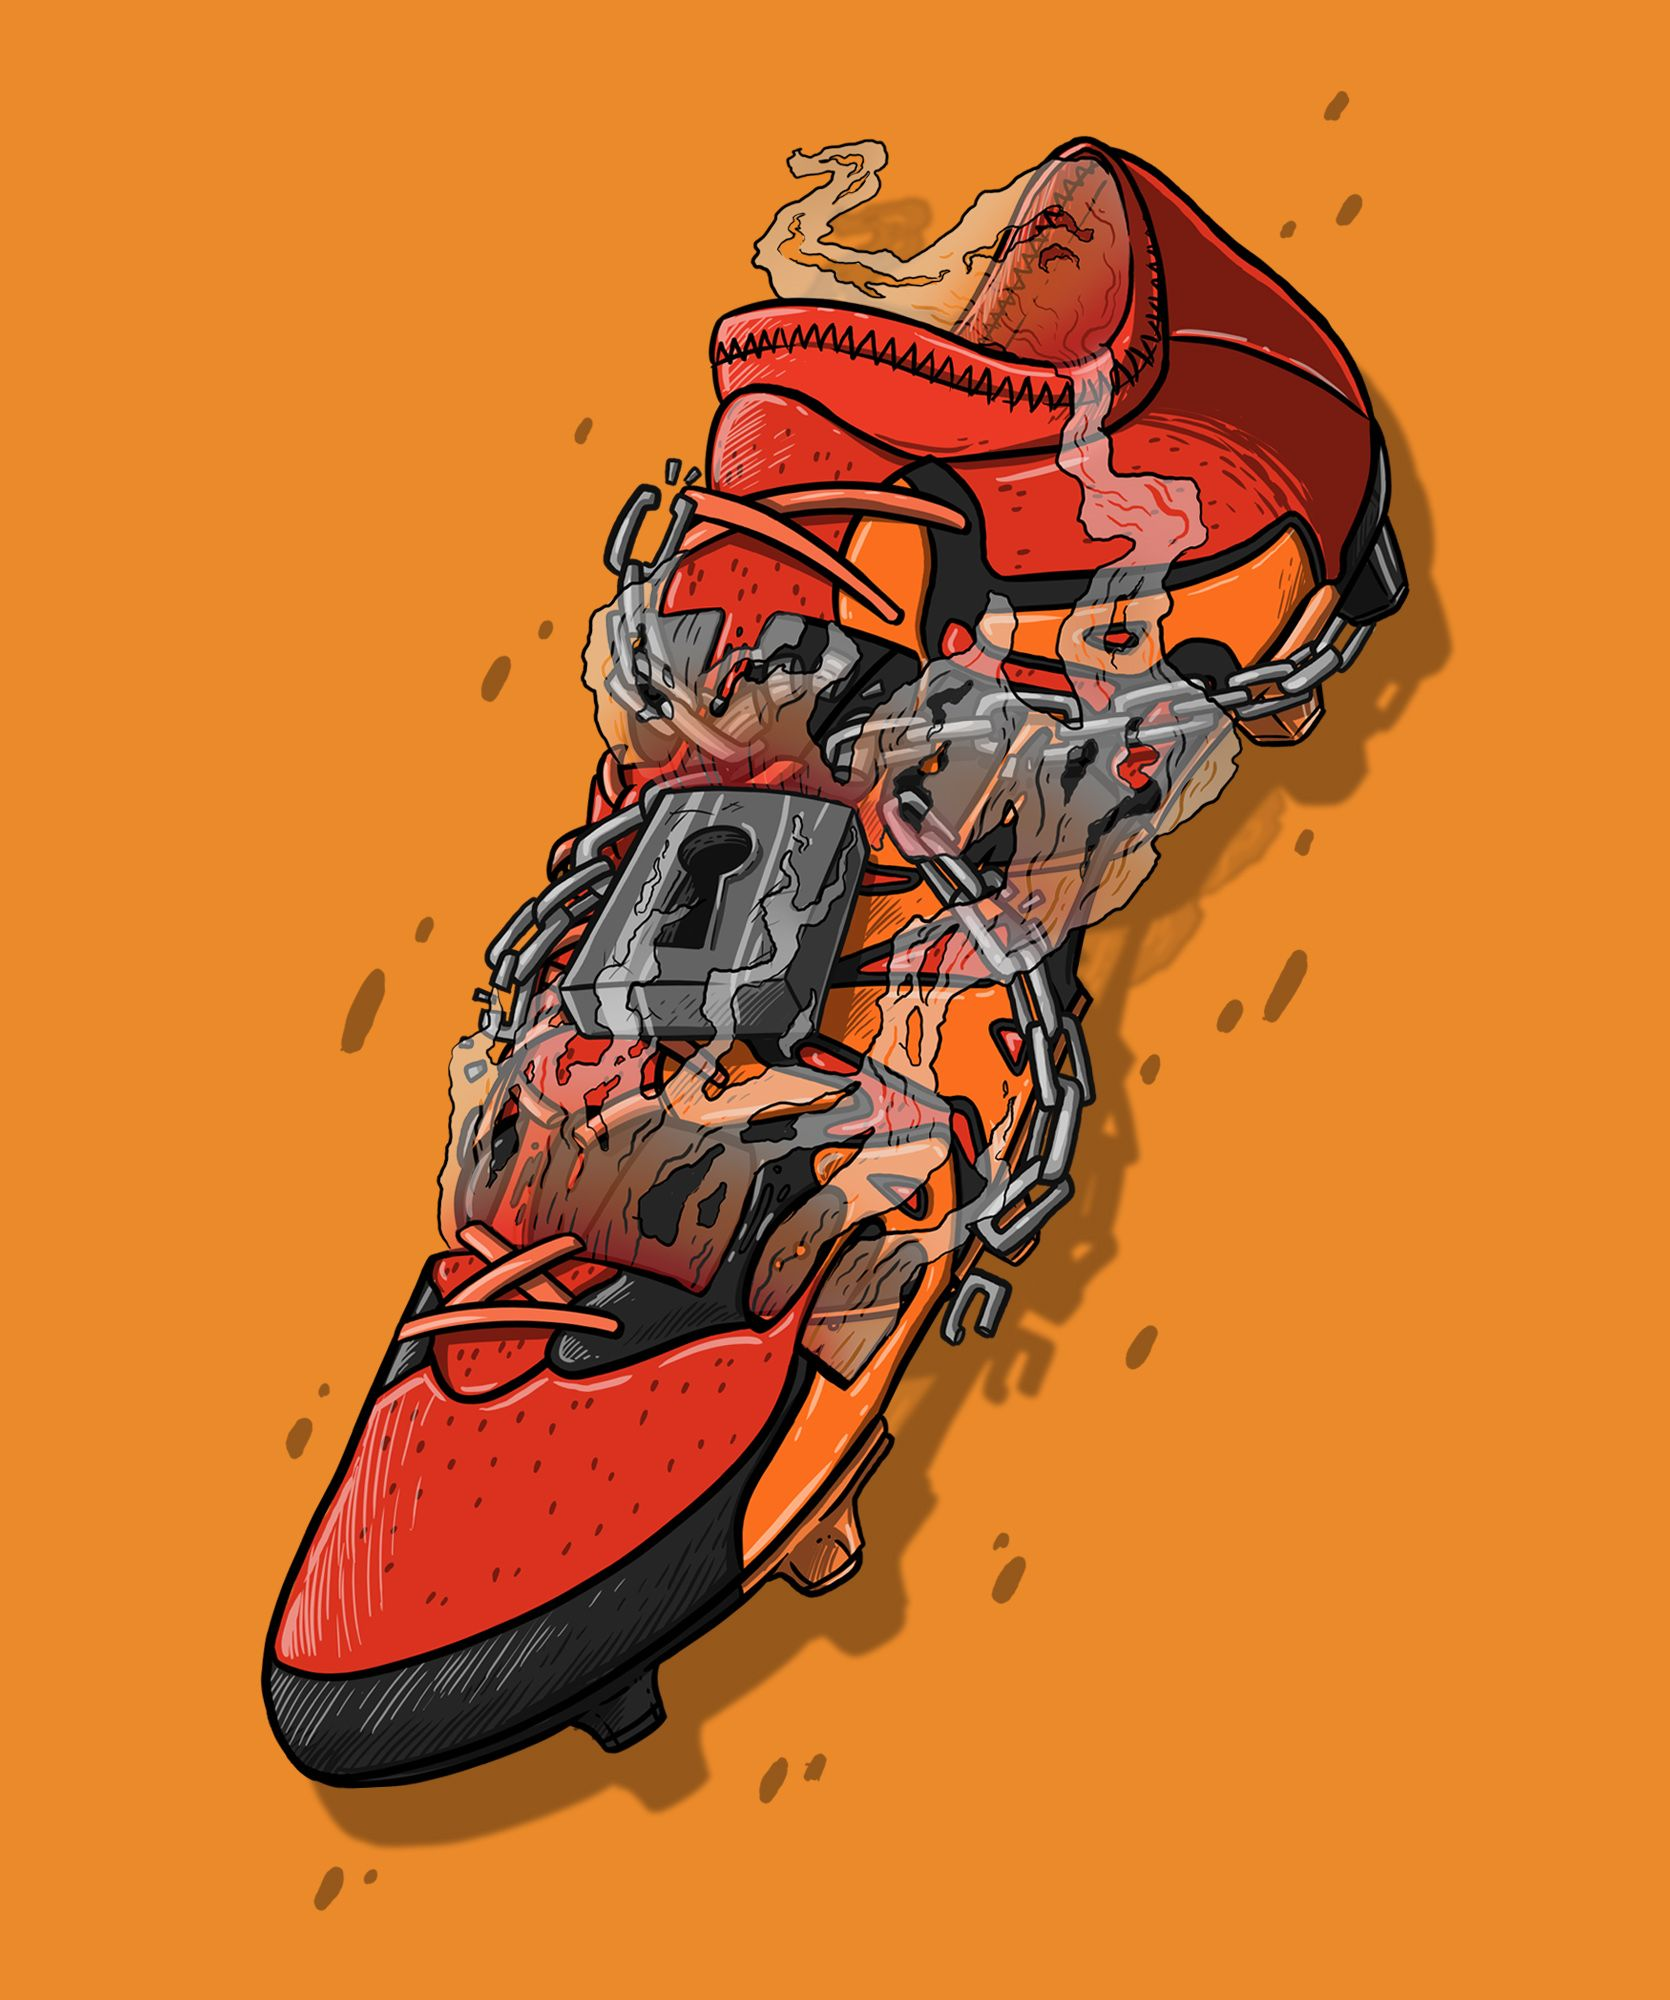 Football Art - Adidas X Primeknit